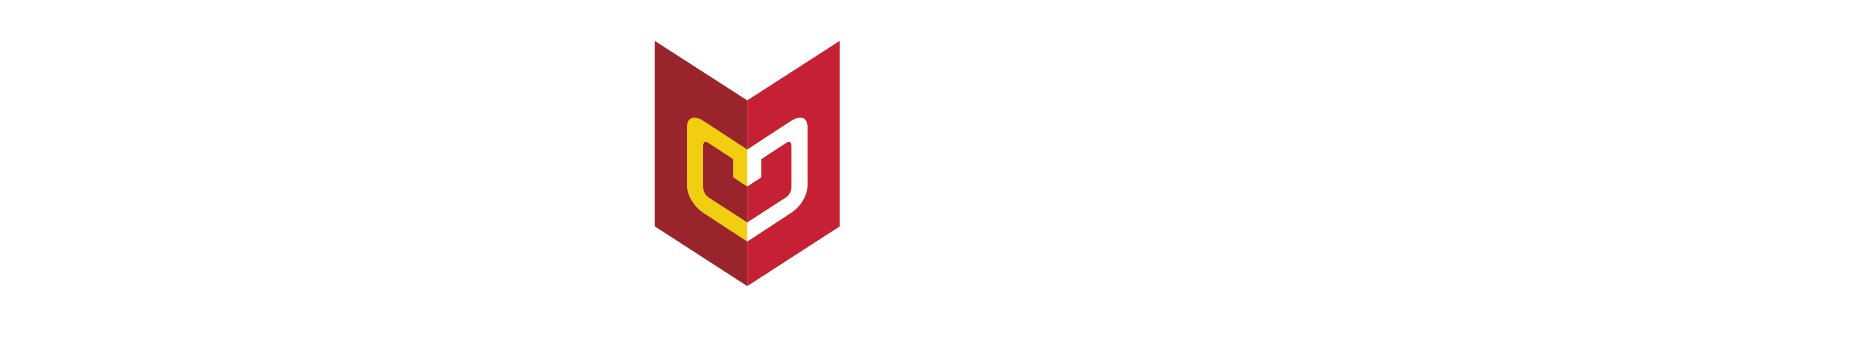 Calvin University Rare Disease Research & Support